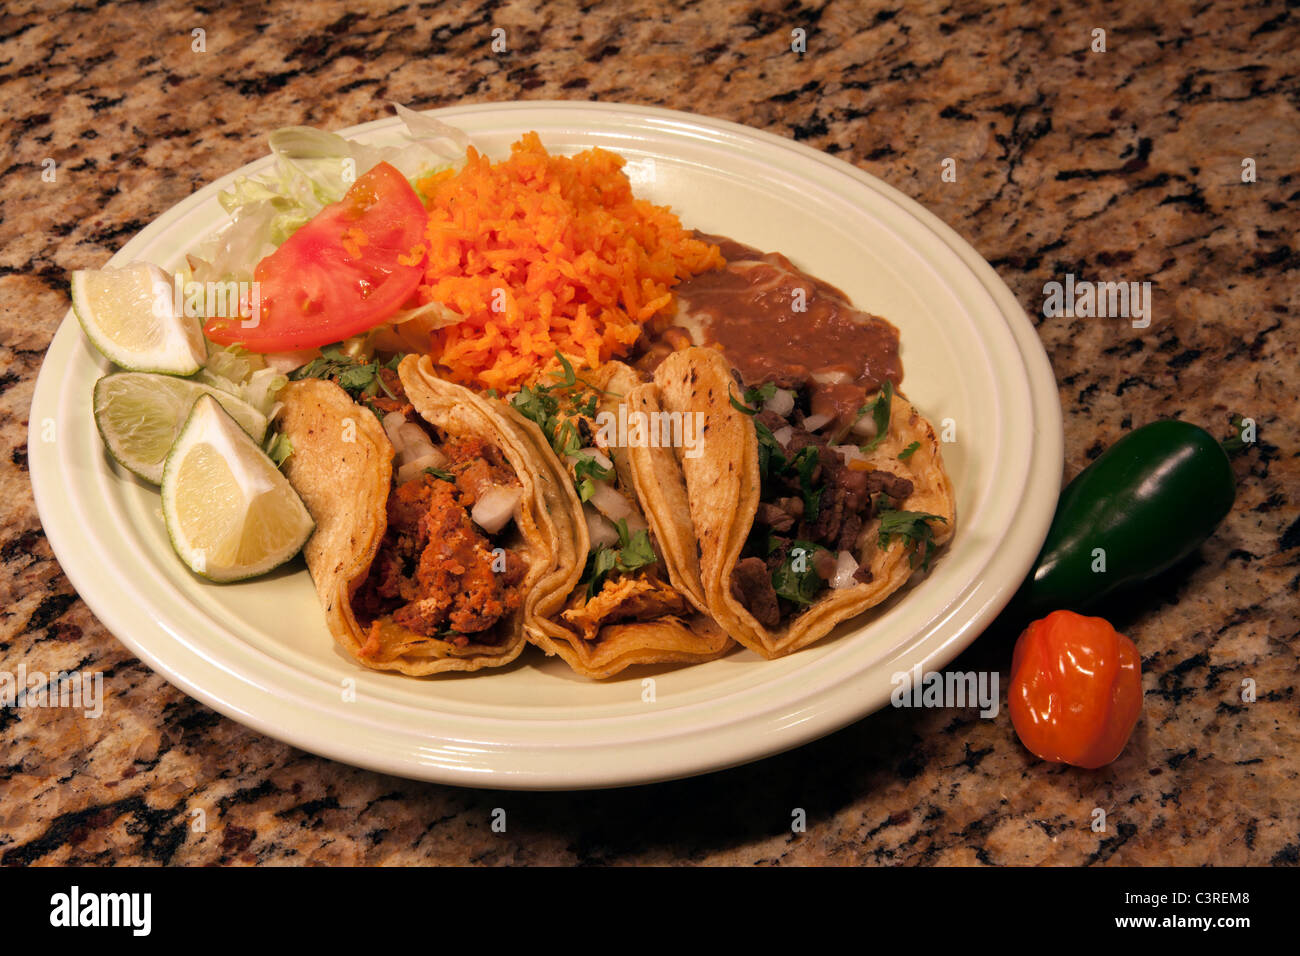 Plate of three tacos with rice and beans Stock Photo